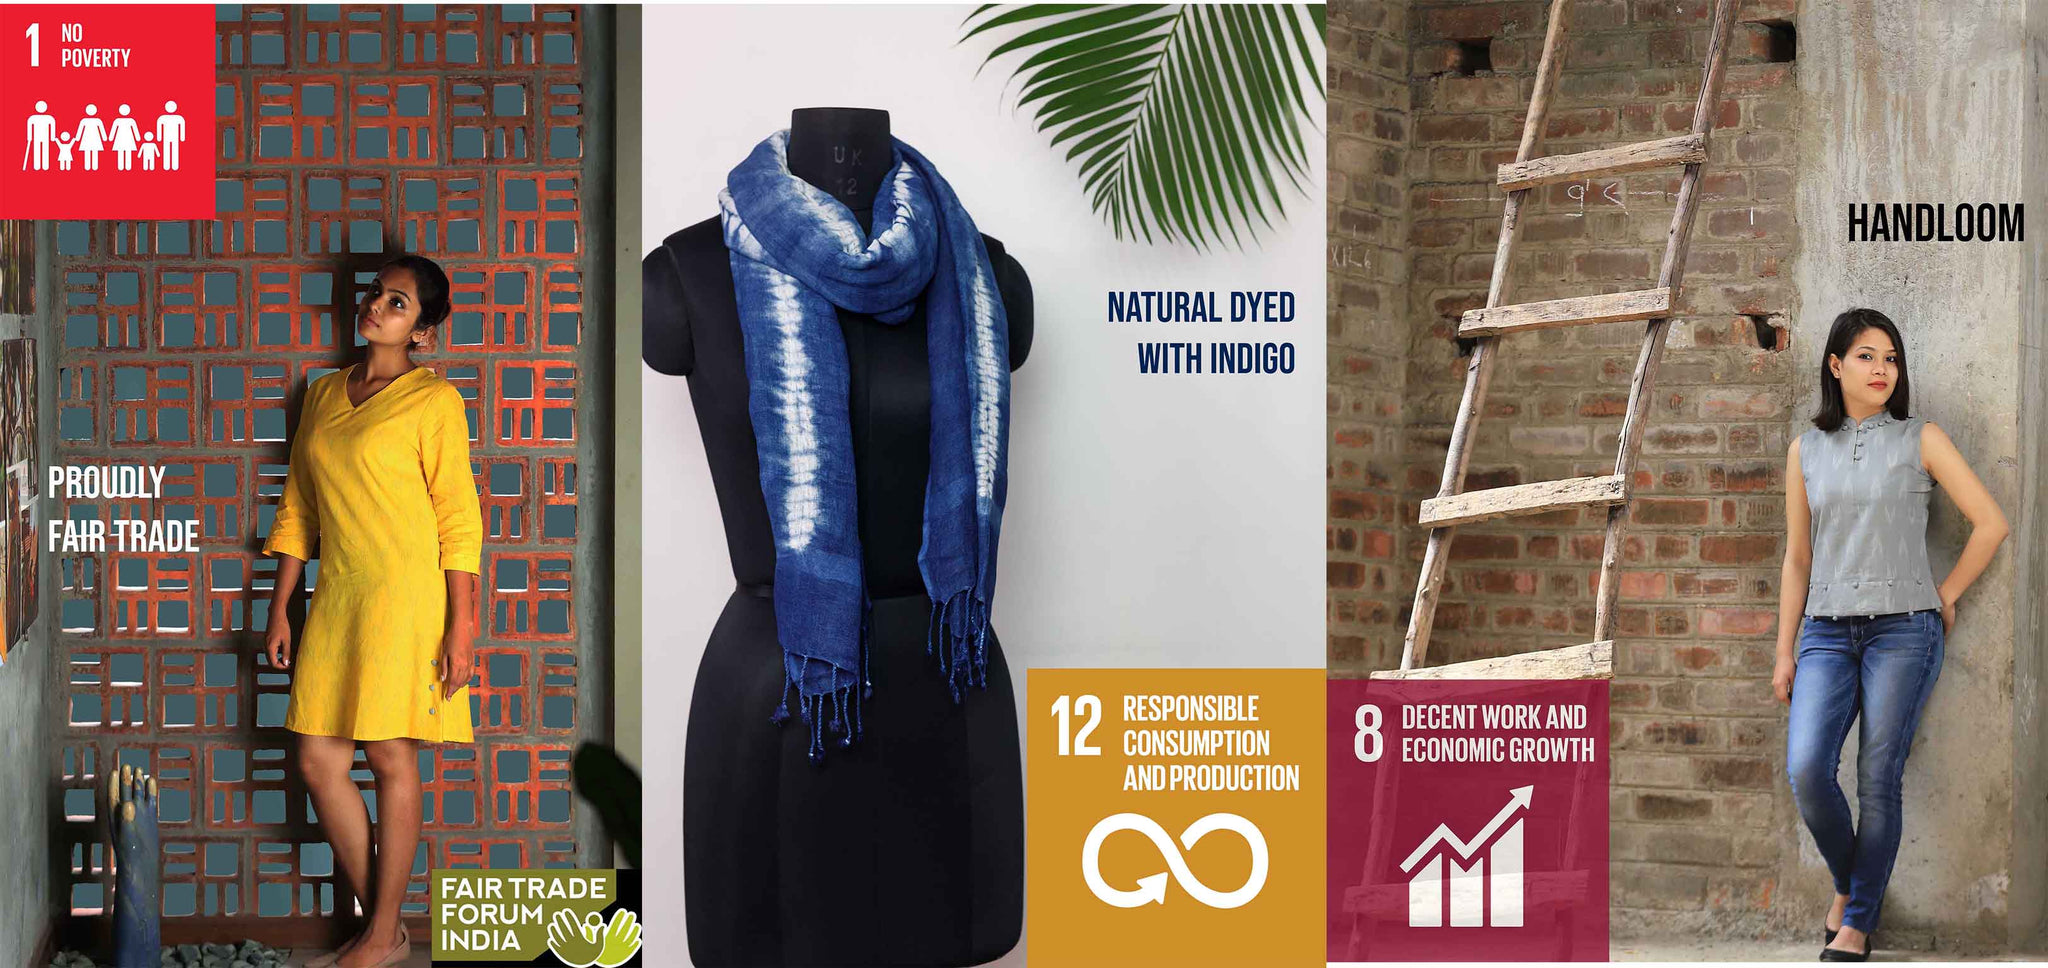 Ethic Attic supports UN's Sustainable Development Goals